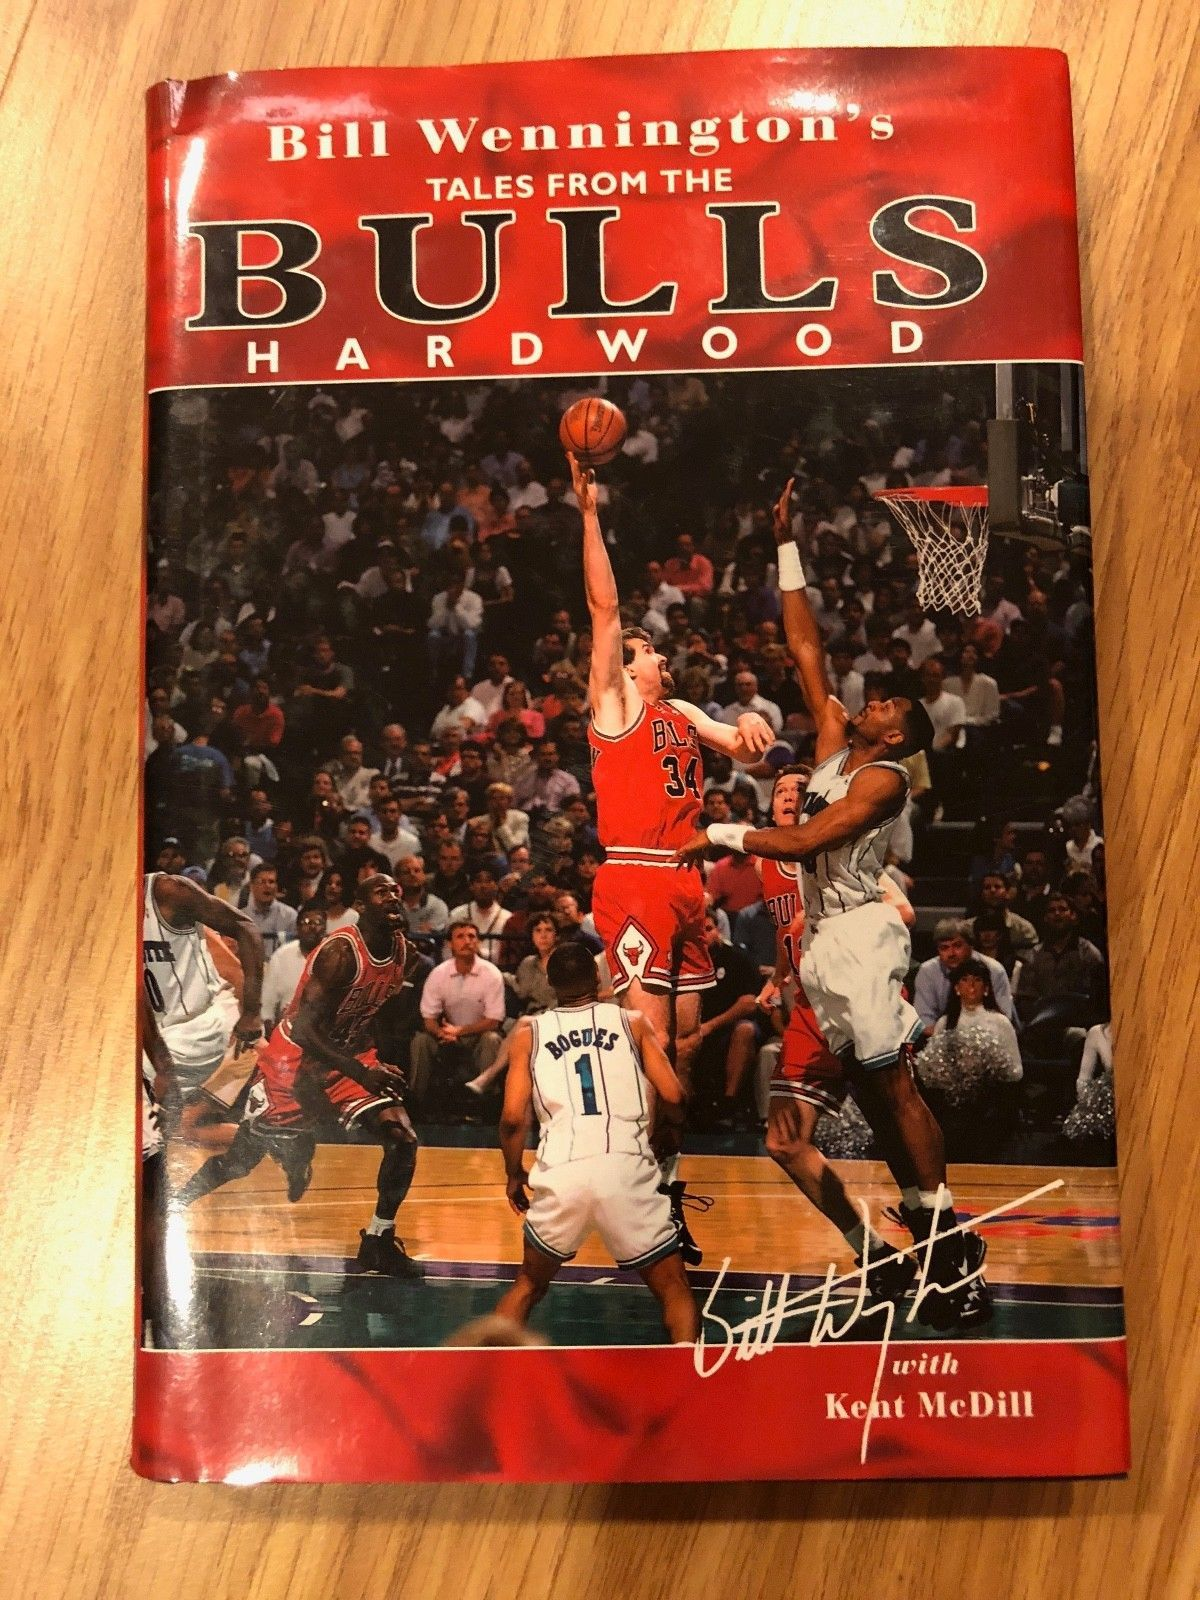 Signed Auto Bill Wennington's Tales from the Bulls Hardwood HC Book